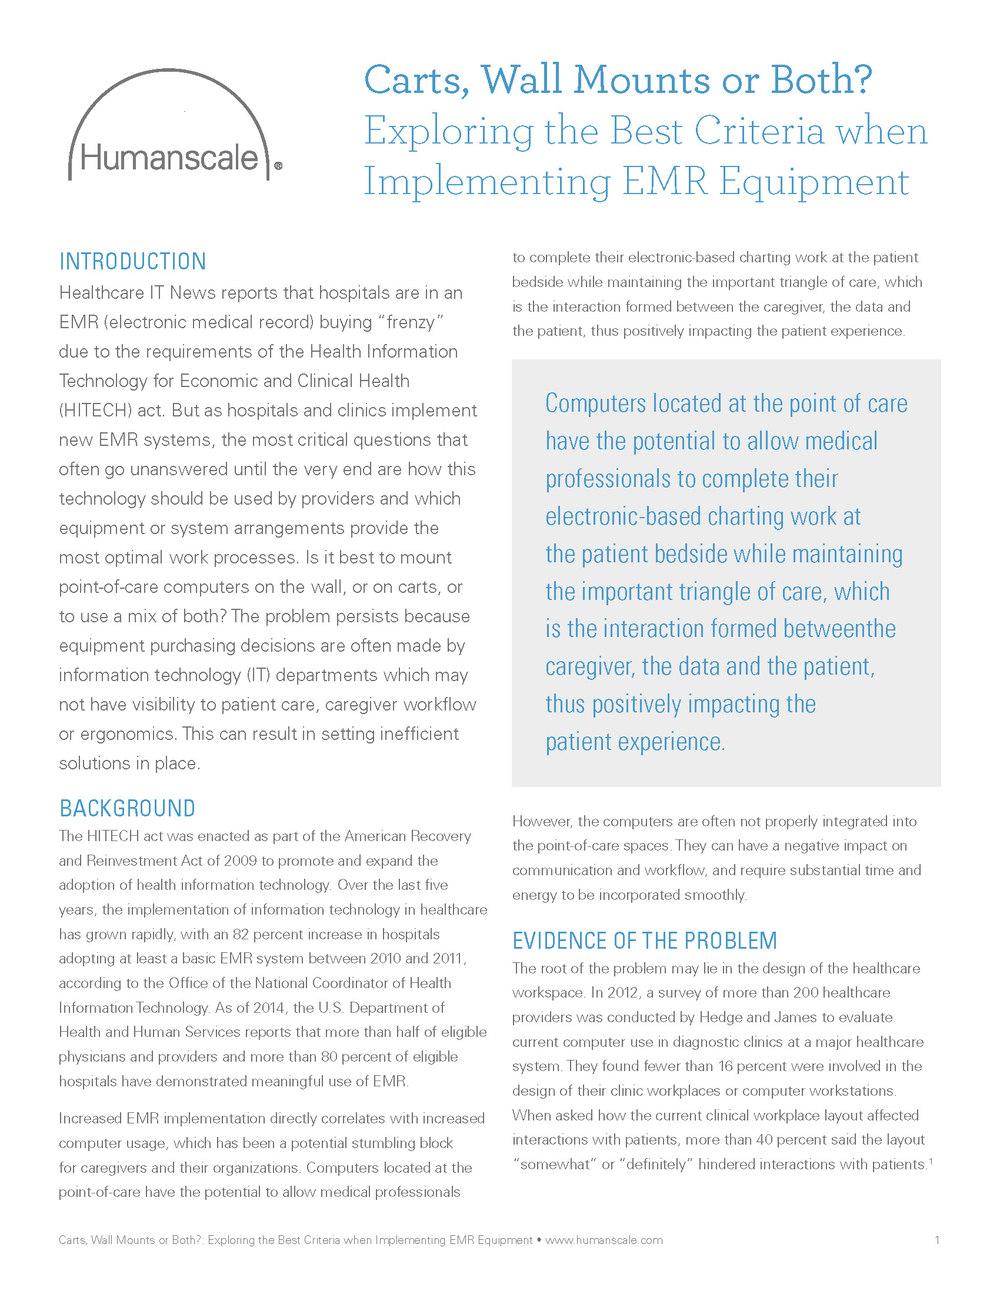 Carts, Wall Mounts or Both? Exploring the Best Criteria when Implementing EMR Equipment:  courtesy of Humanscale